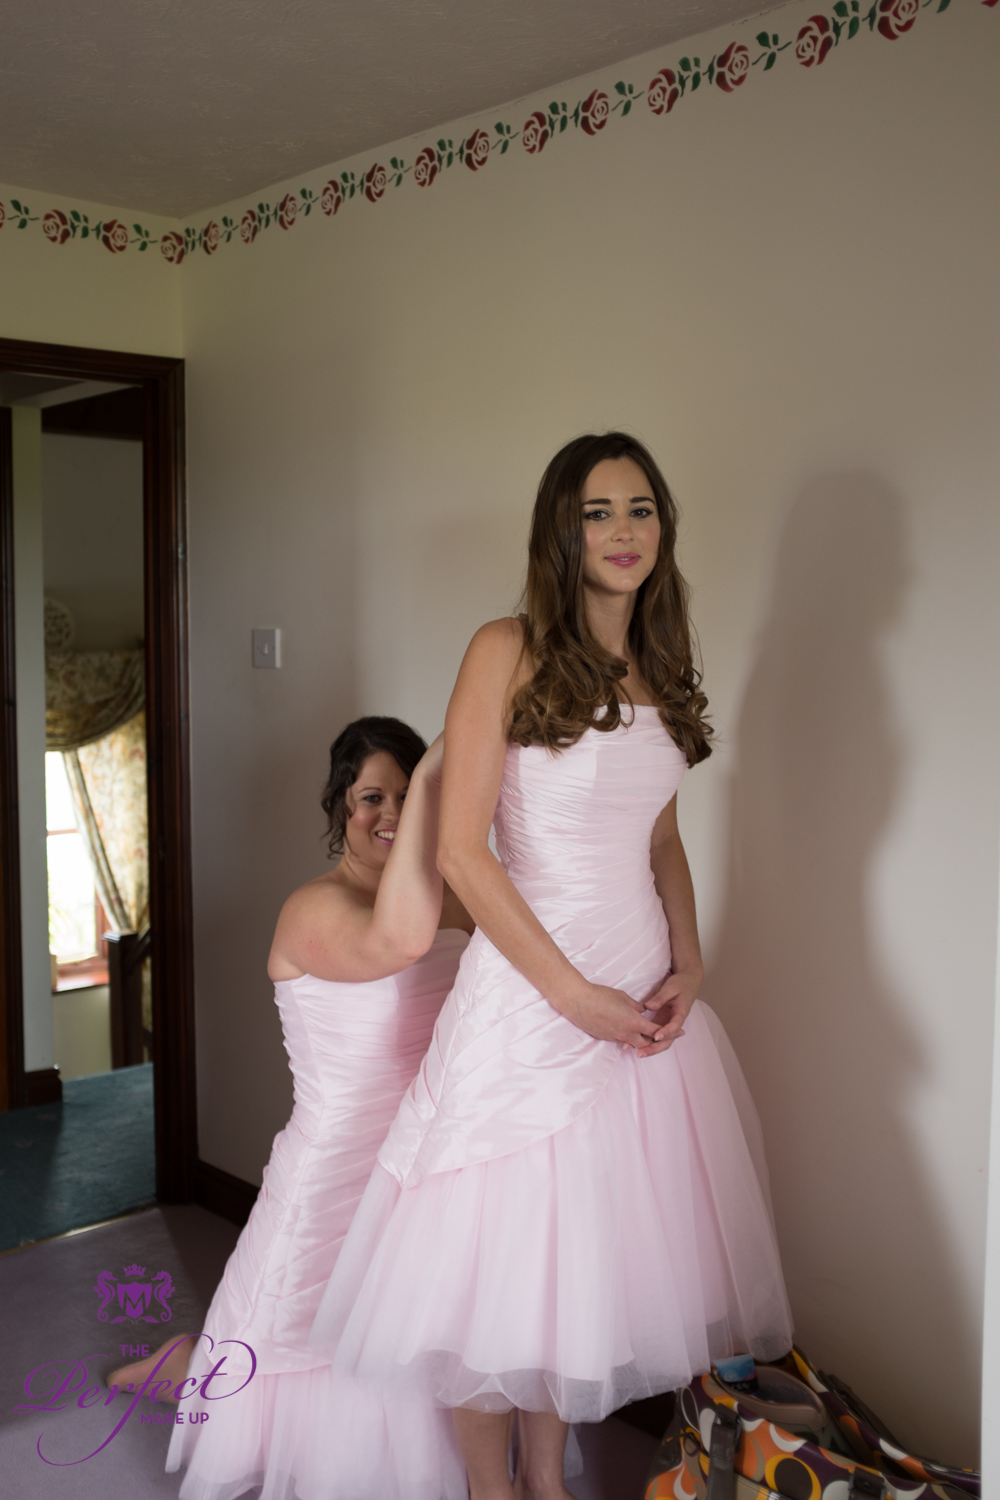 Bridesmaids went to school with Holly. The girls wore girly pink dresses from Ebony Rose.